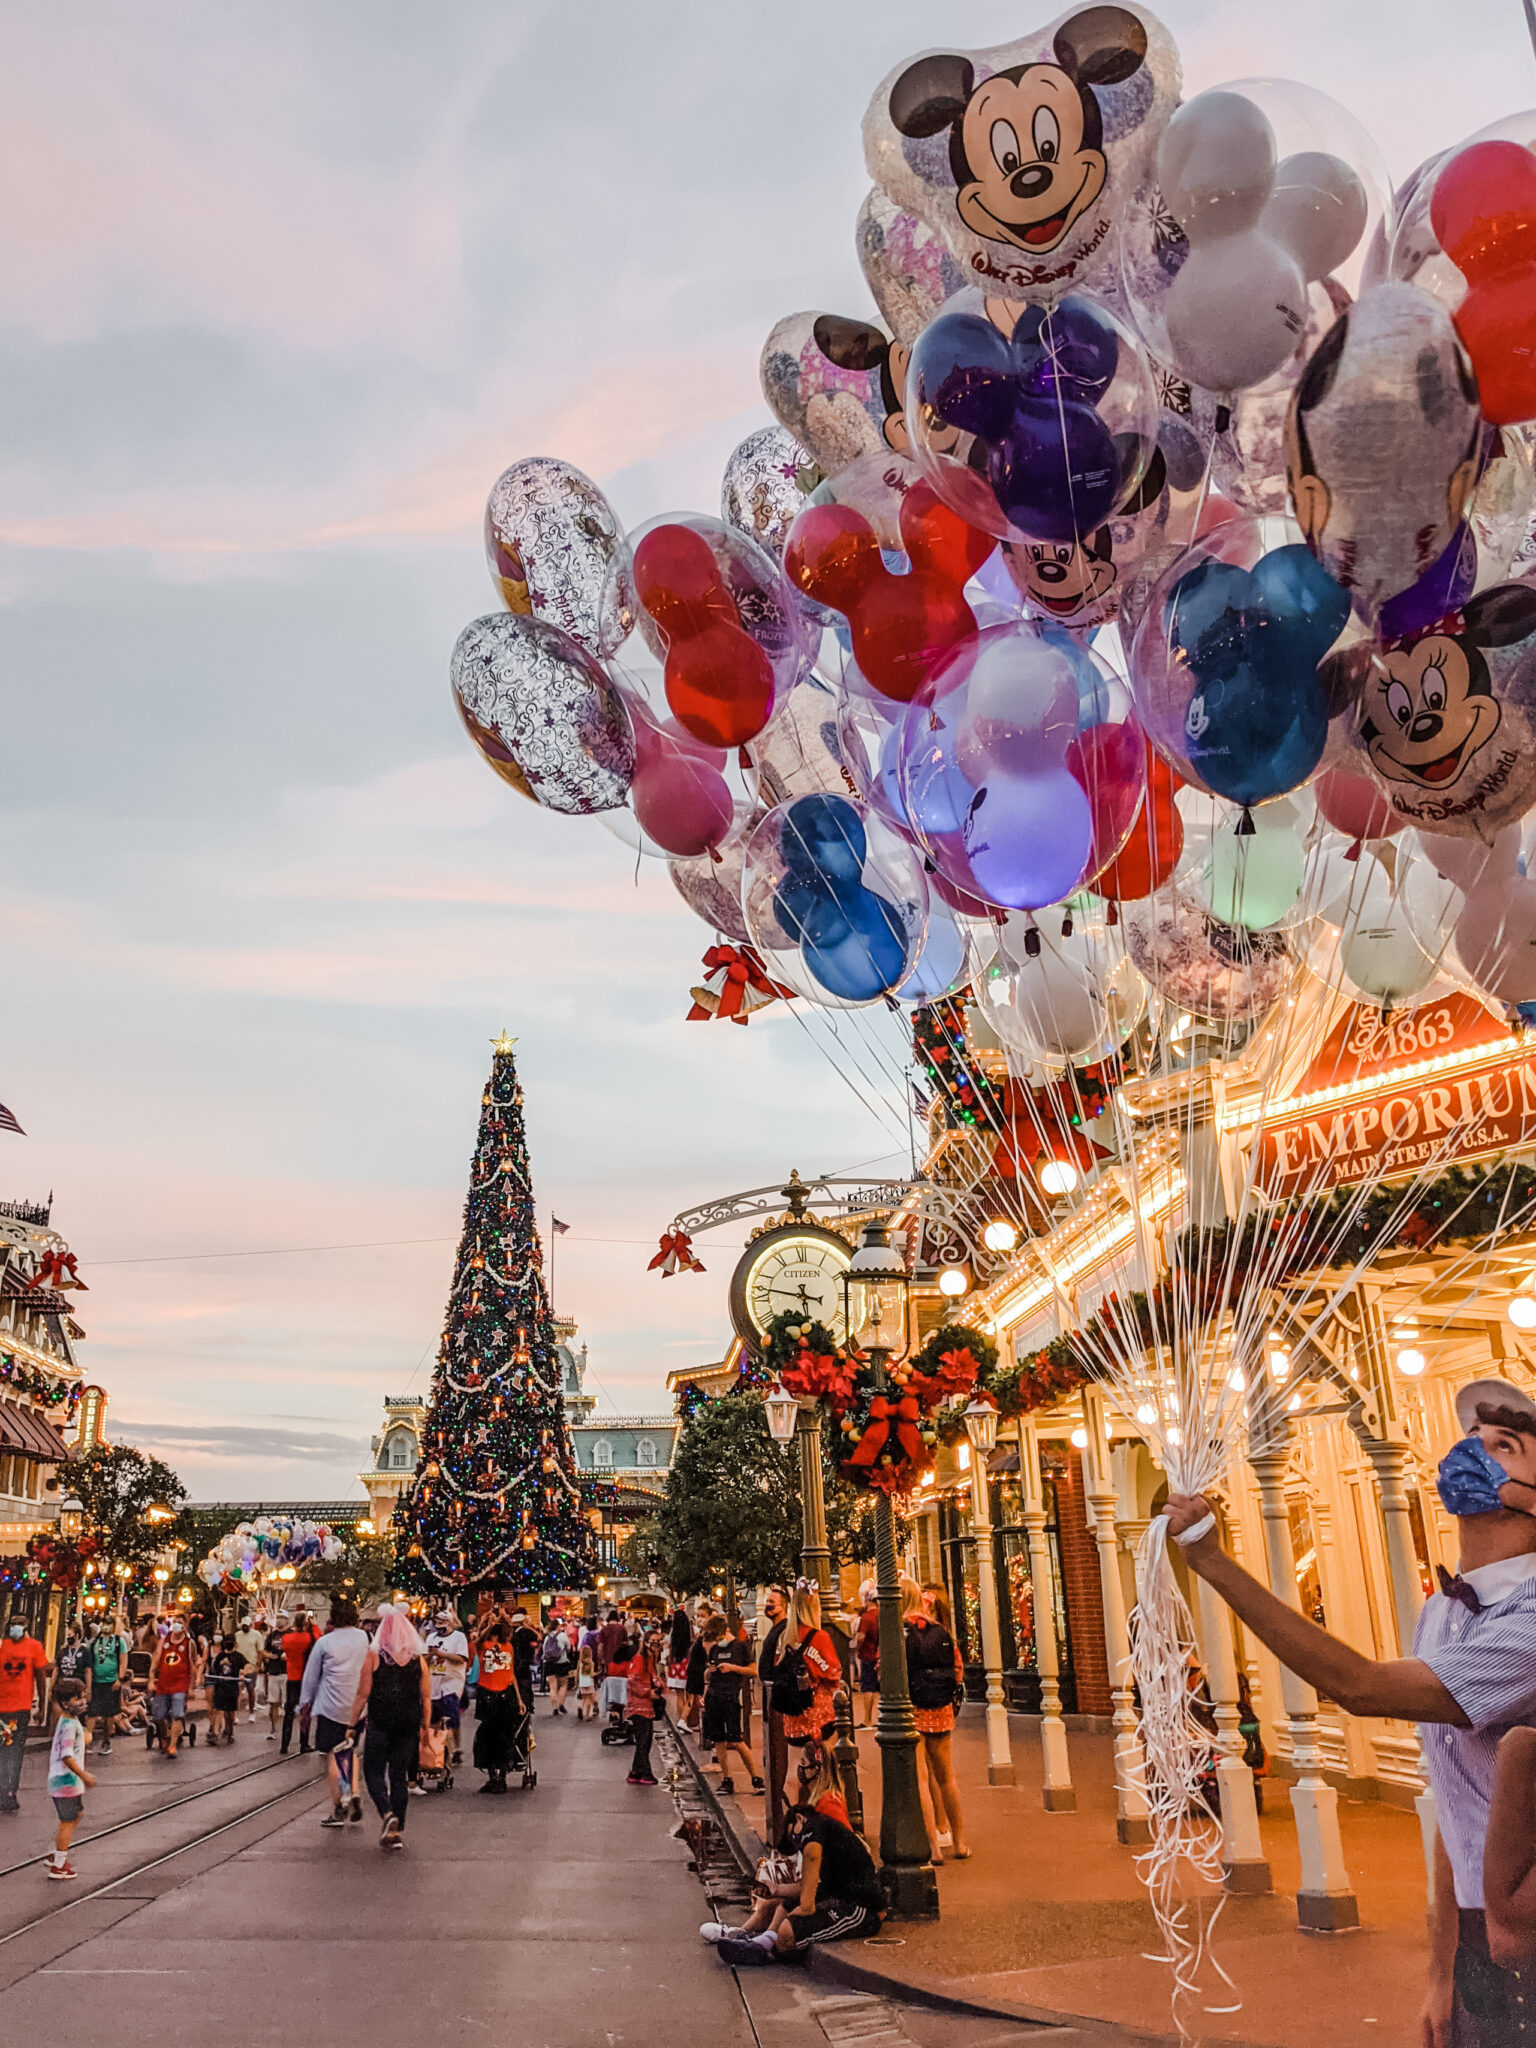 Should You Visit Disney World During the Pandemic? All Things with Purpose Sarah Lemp